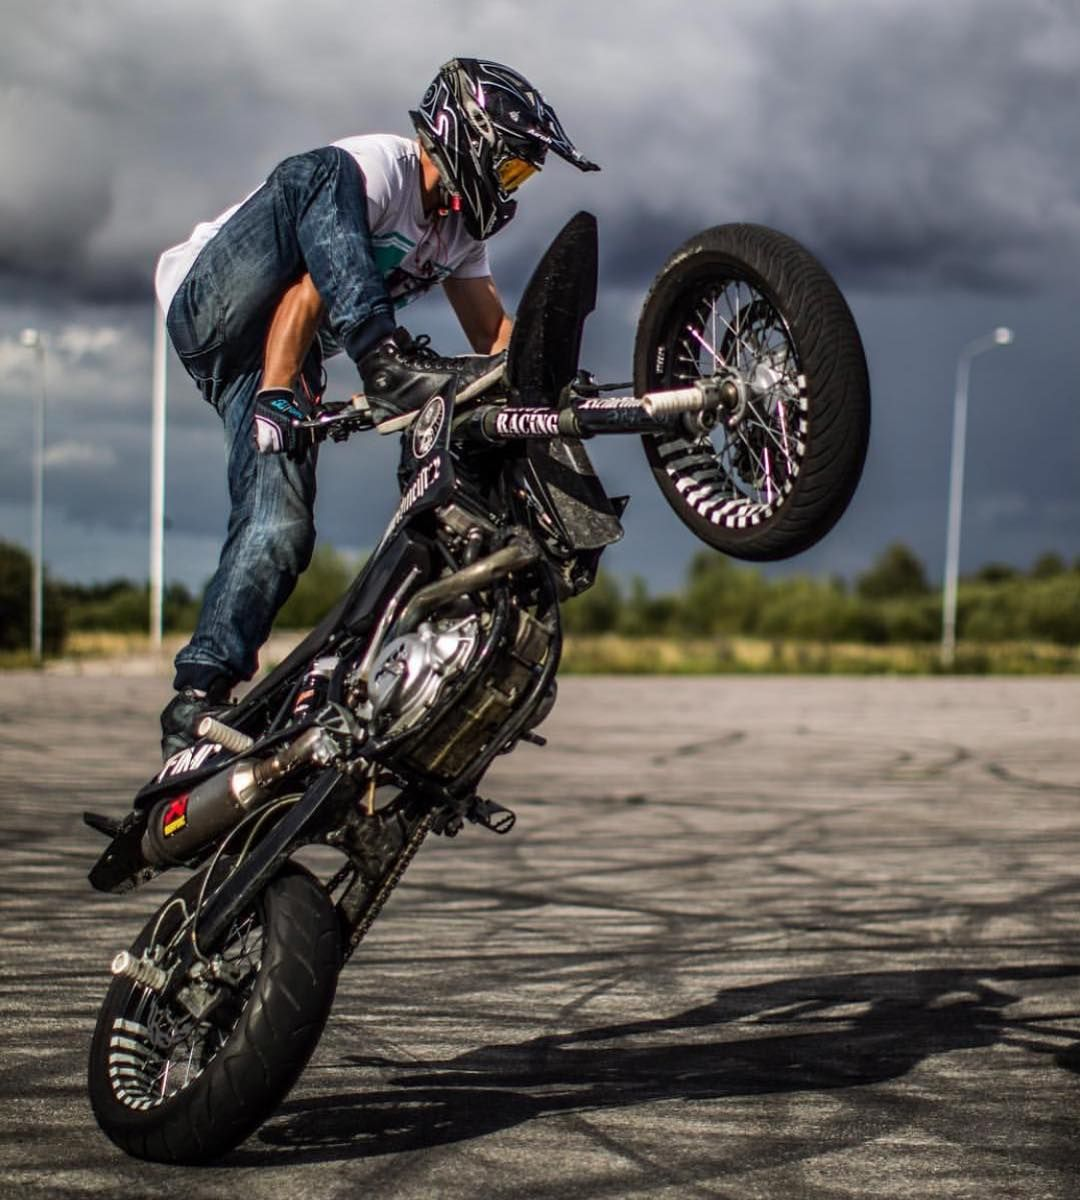 Stand Up Circle Wheelie By Smjimmie Taken By Jonathanbrkmr